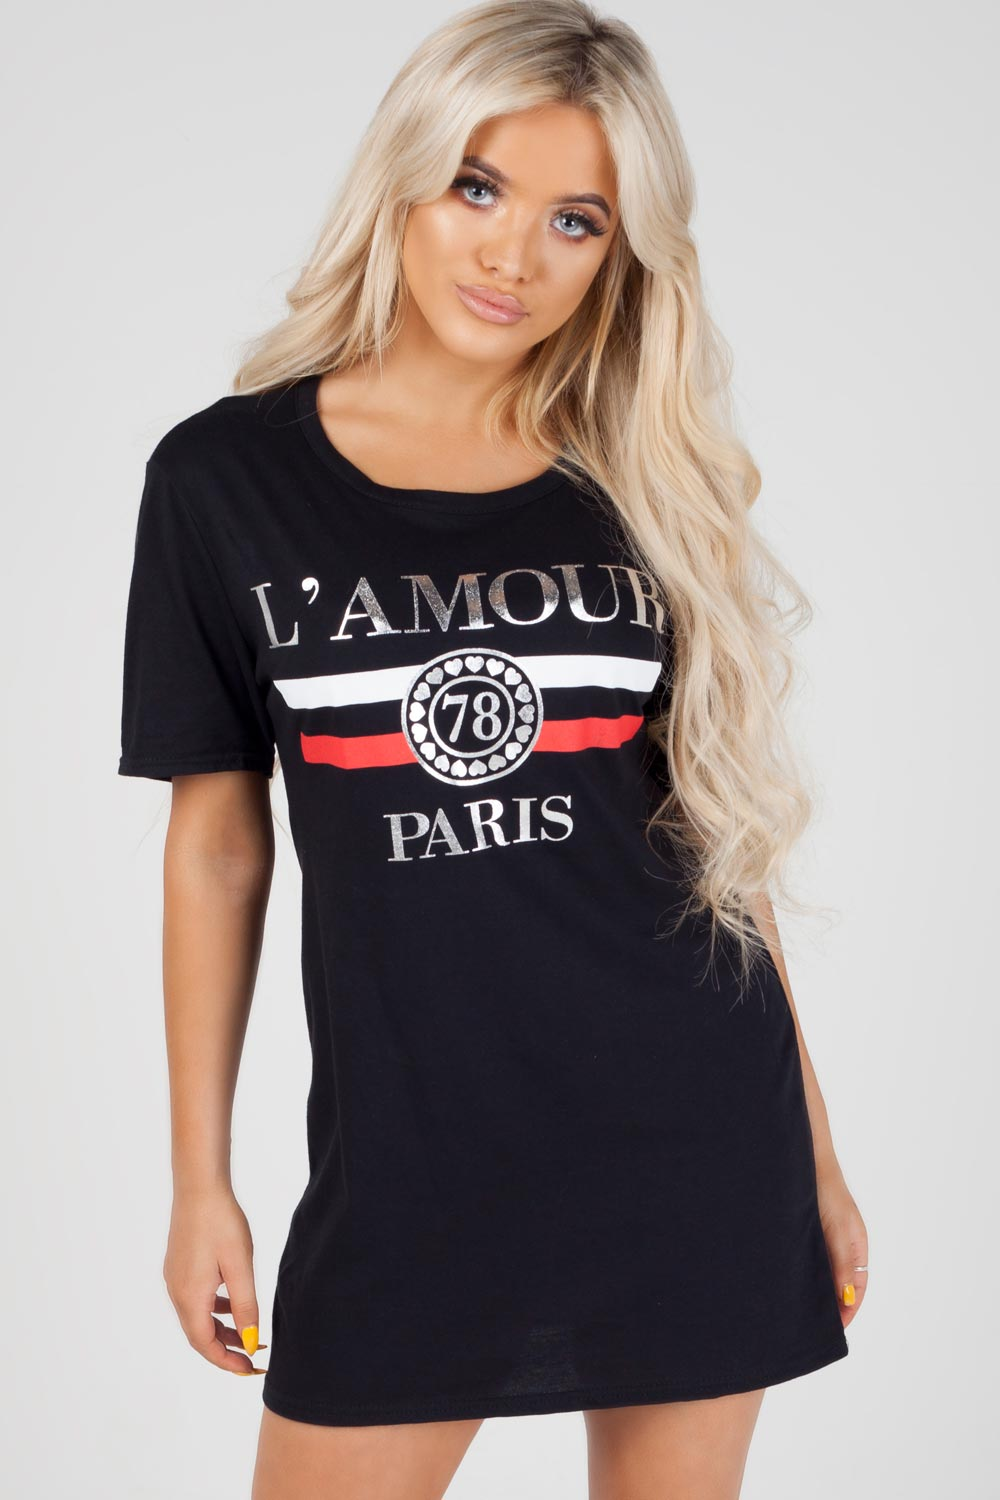 lamour paris slogan top black